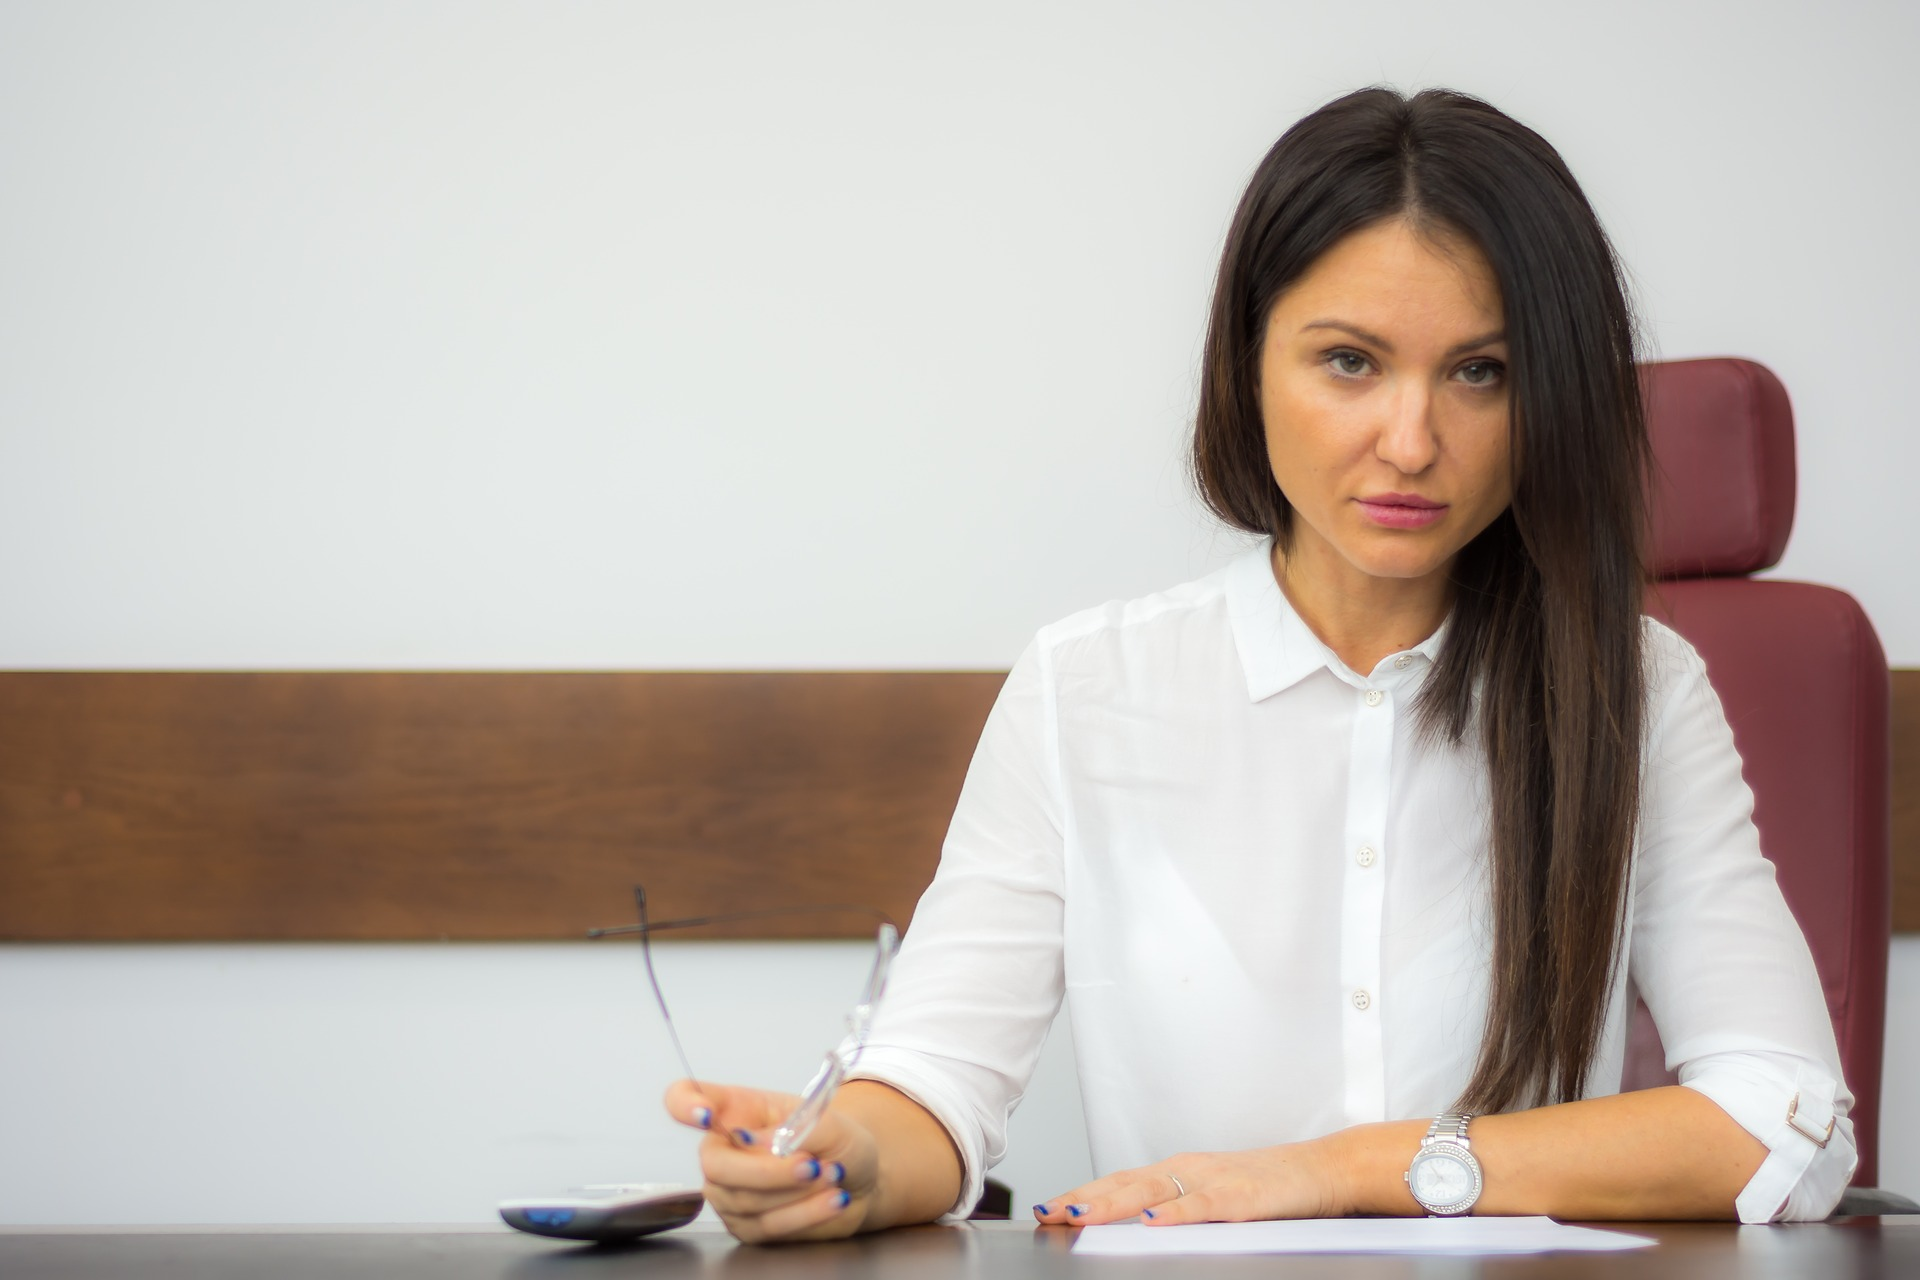 Getting negative feedback at work hurts - but you can bounce back